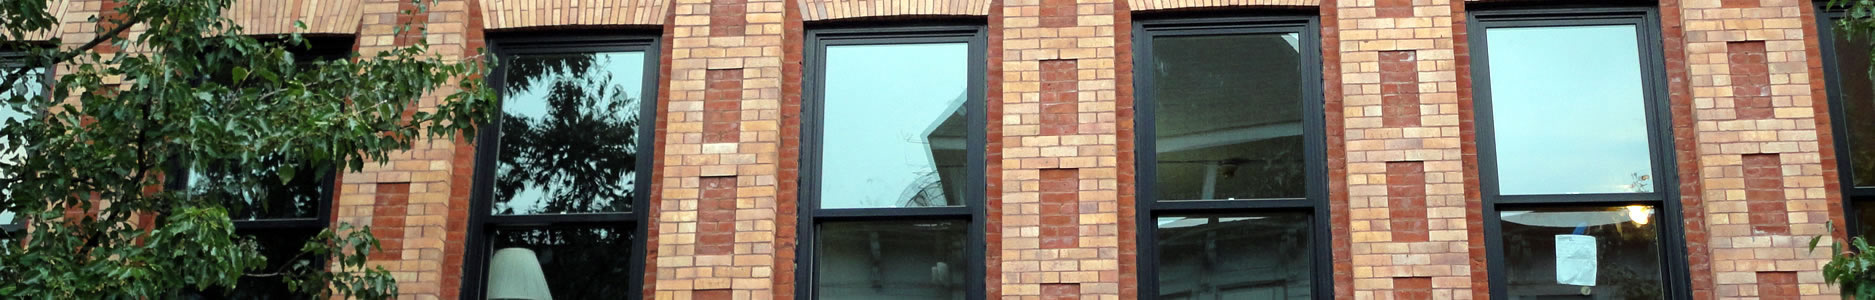 Window Installation, Repair & Replacement Service